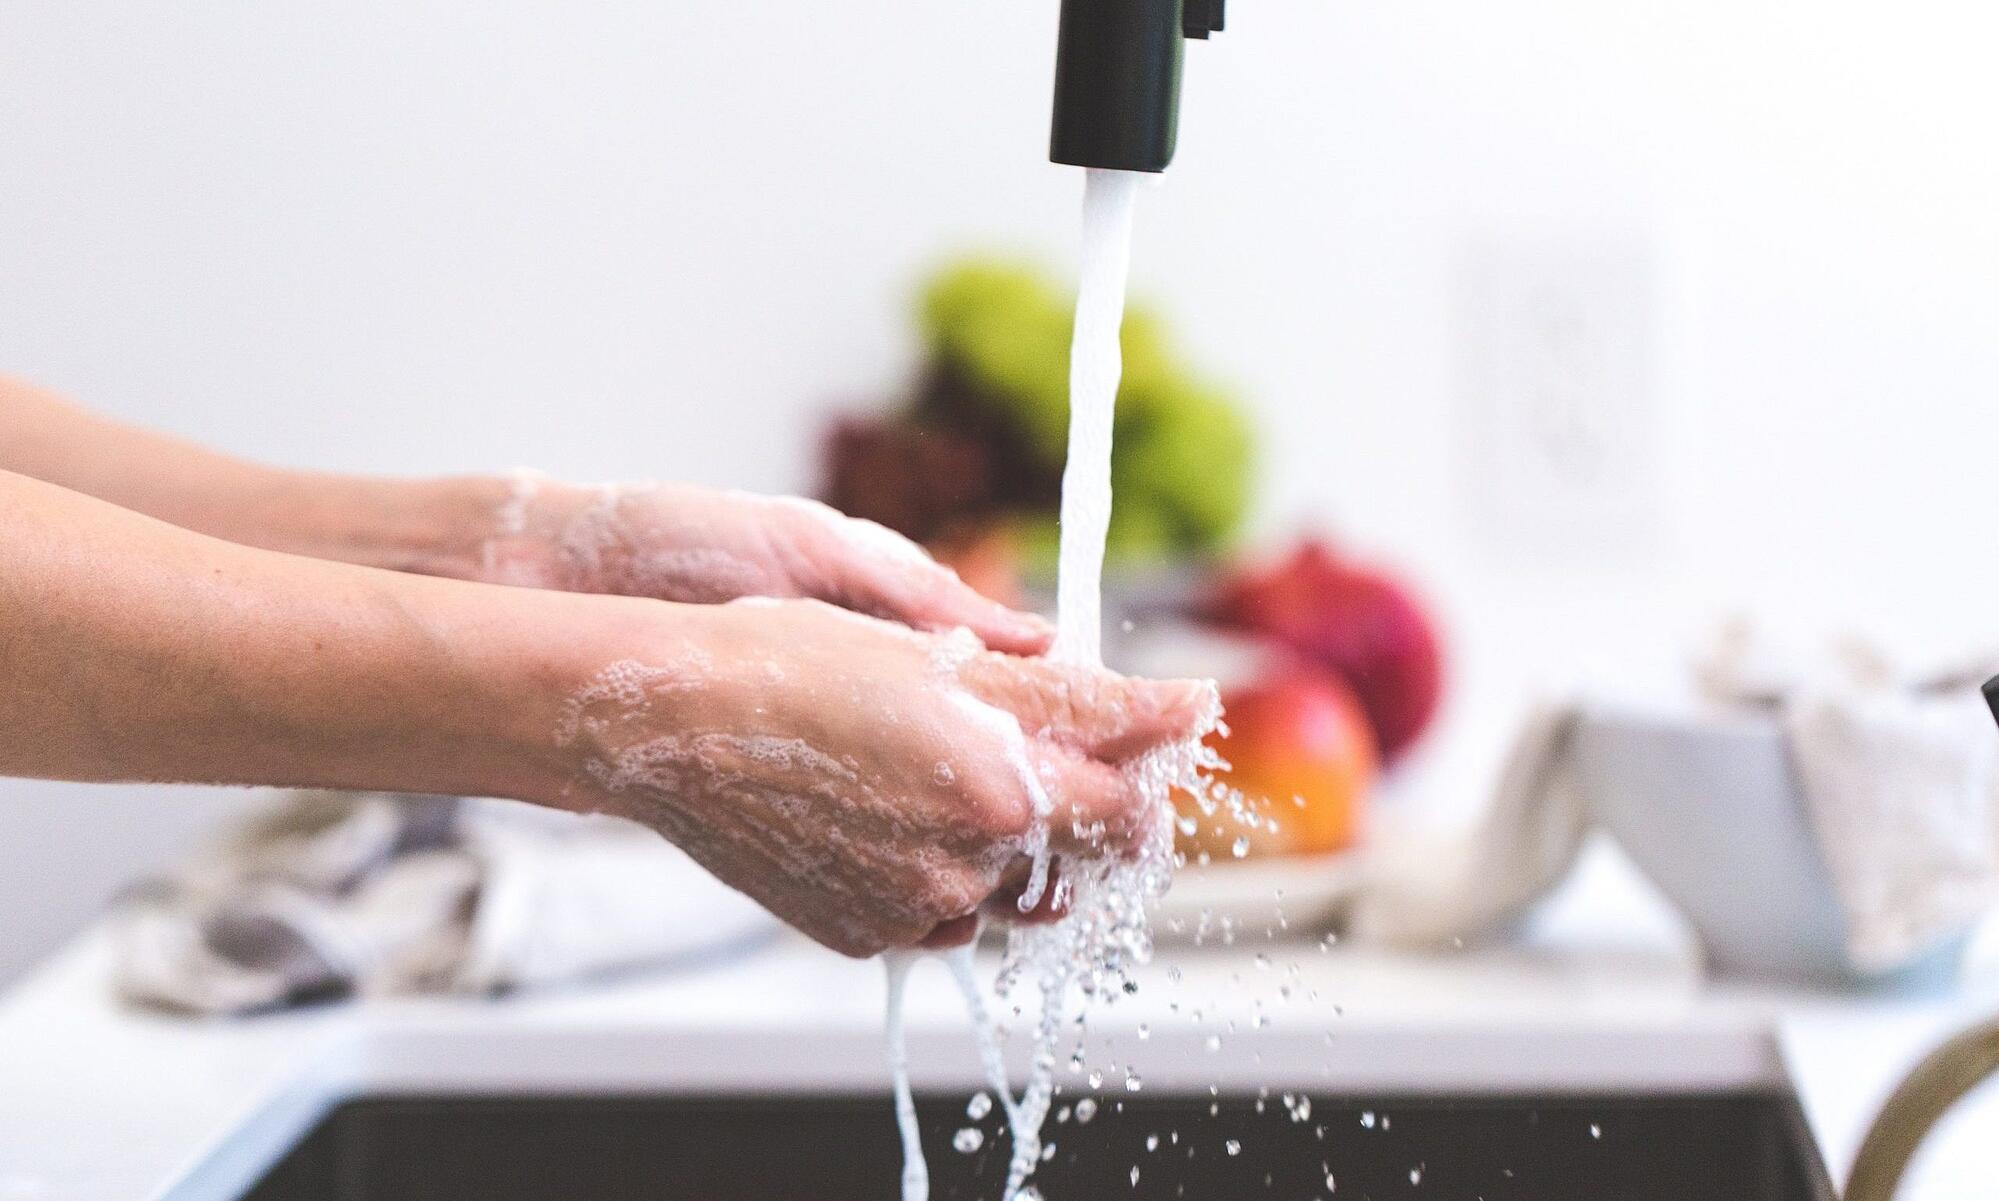 cropped-cooking-hands-handwashing-health-545013-scaled-1